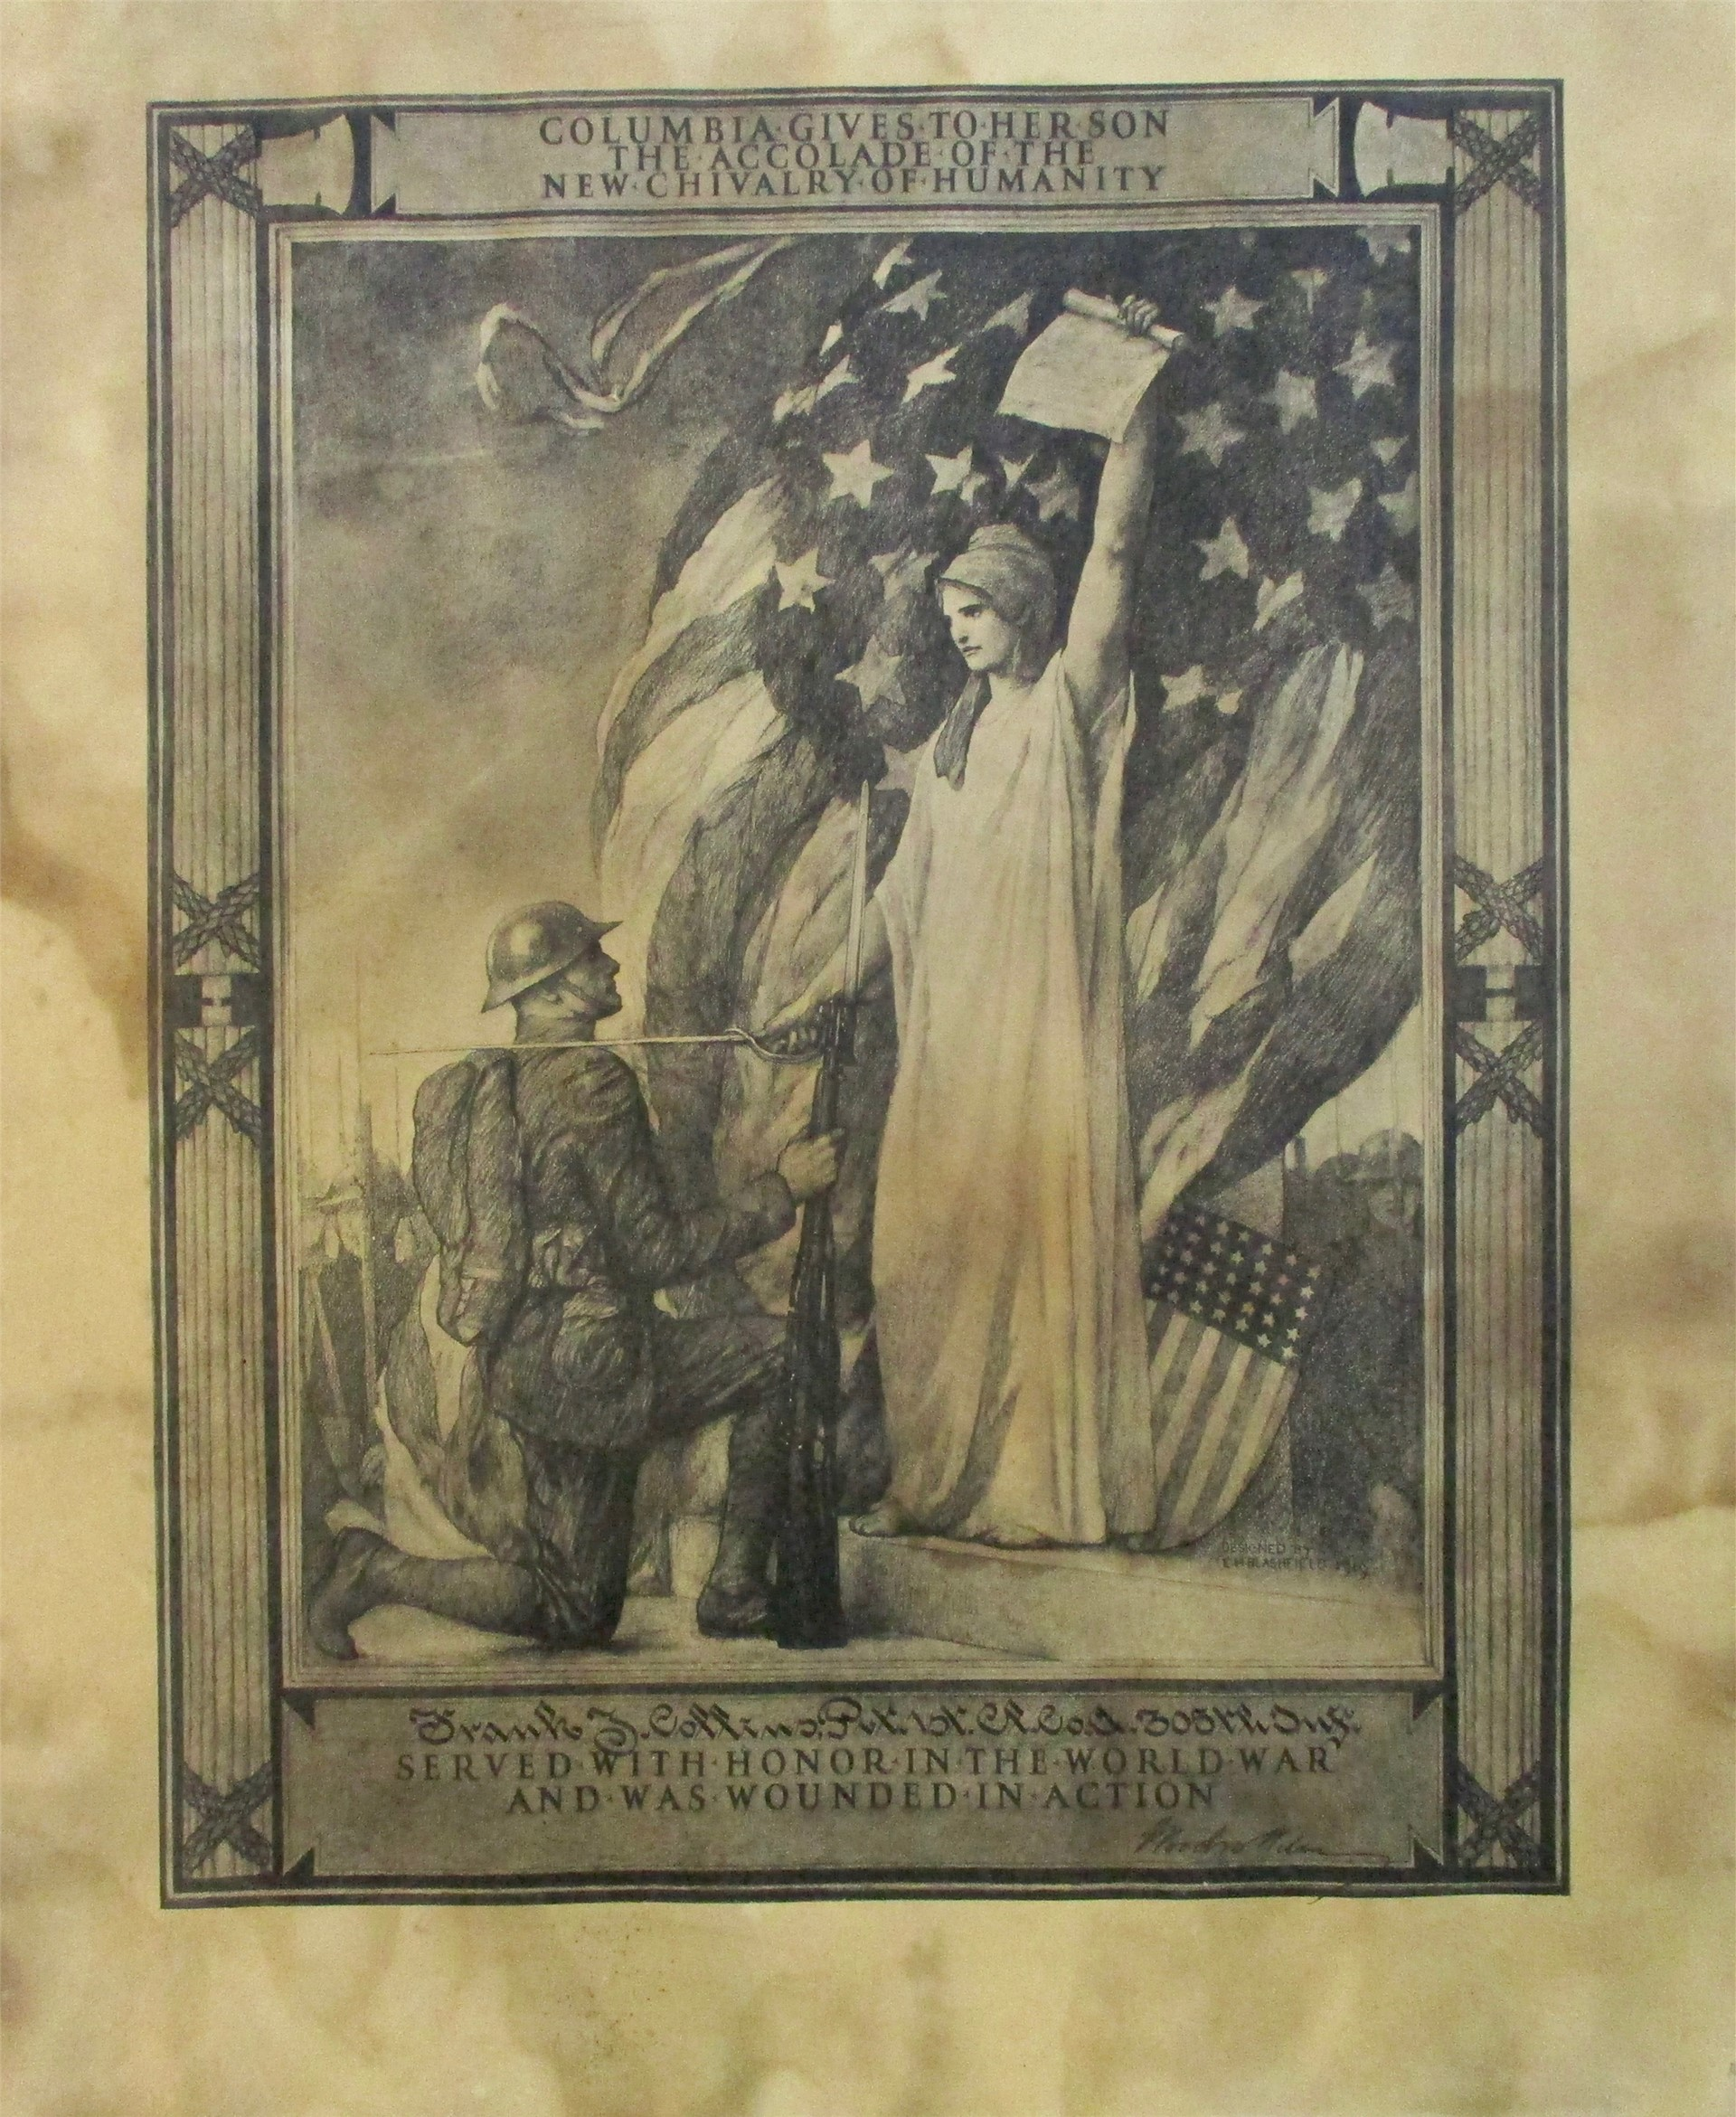 World War I exhibit: Image of commerative document.